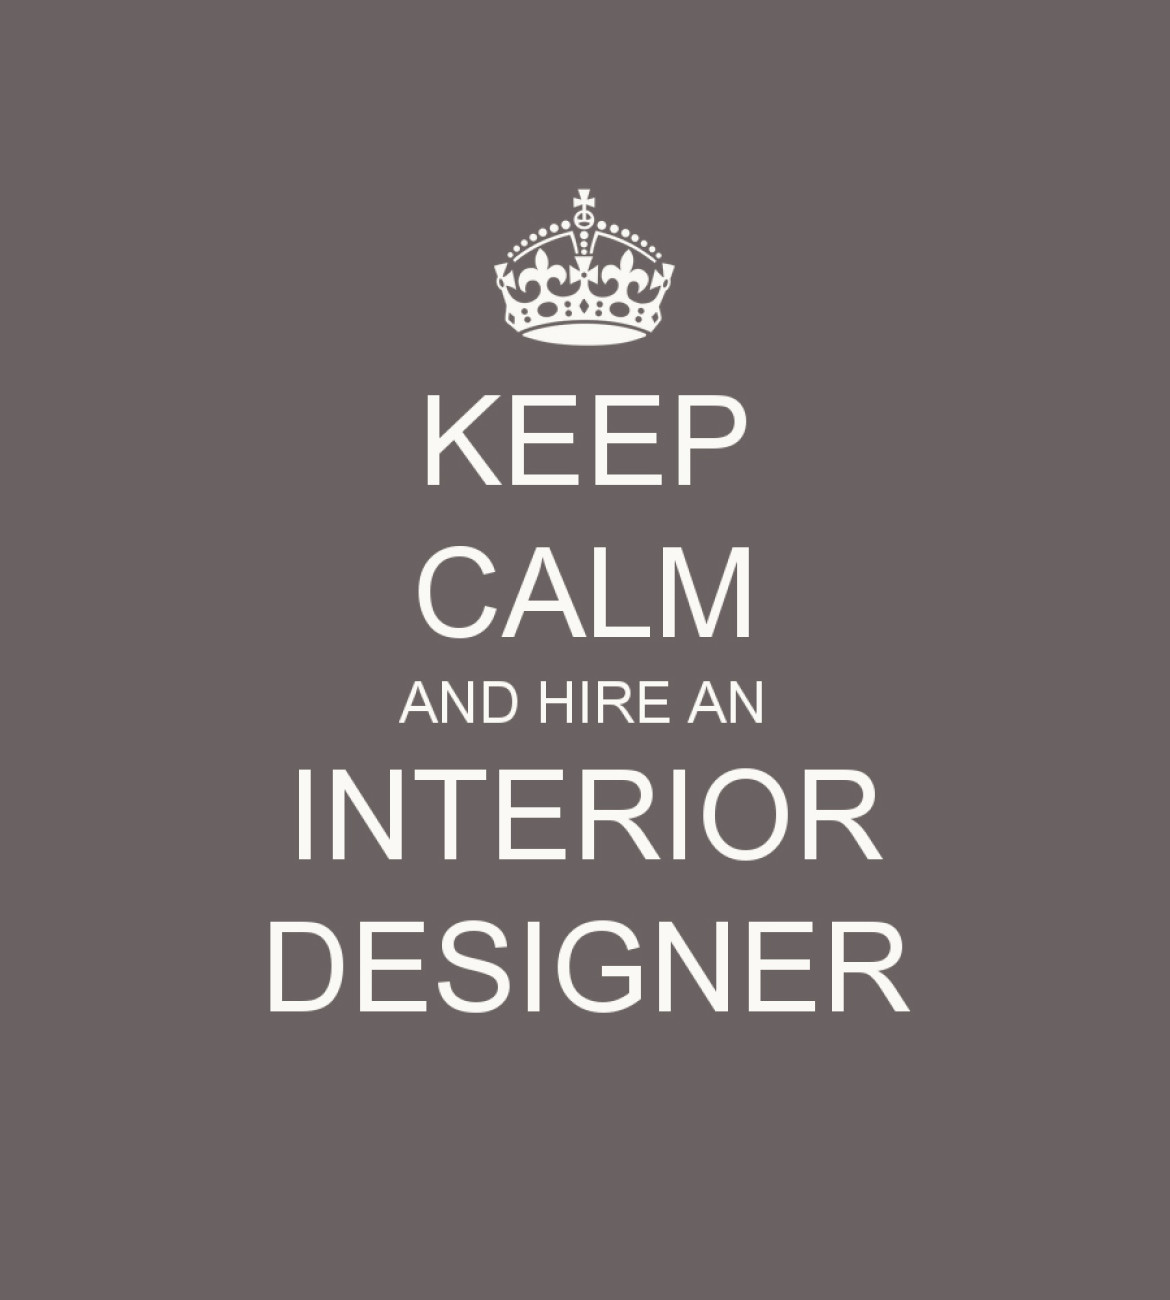 why should i hire an interior designer